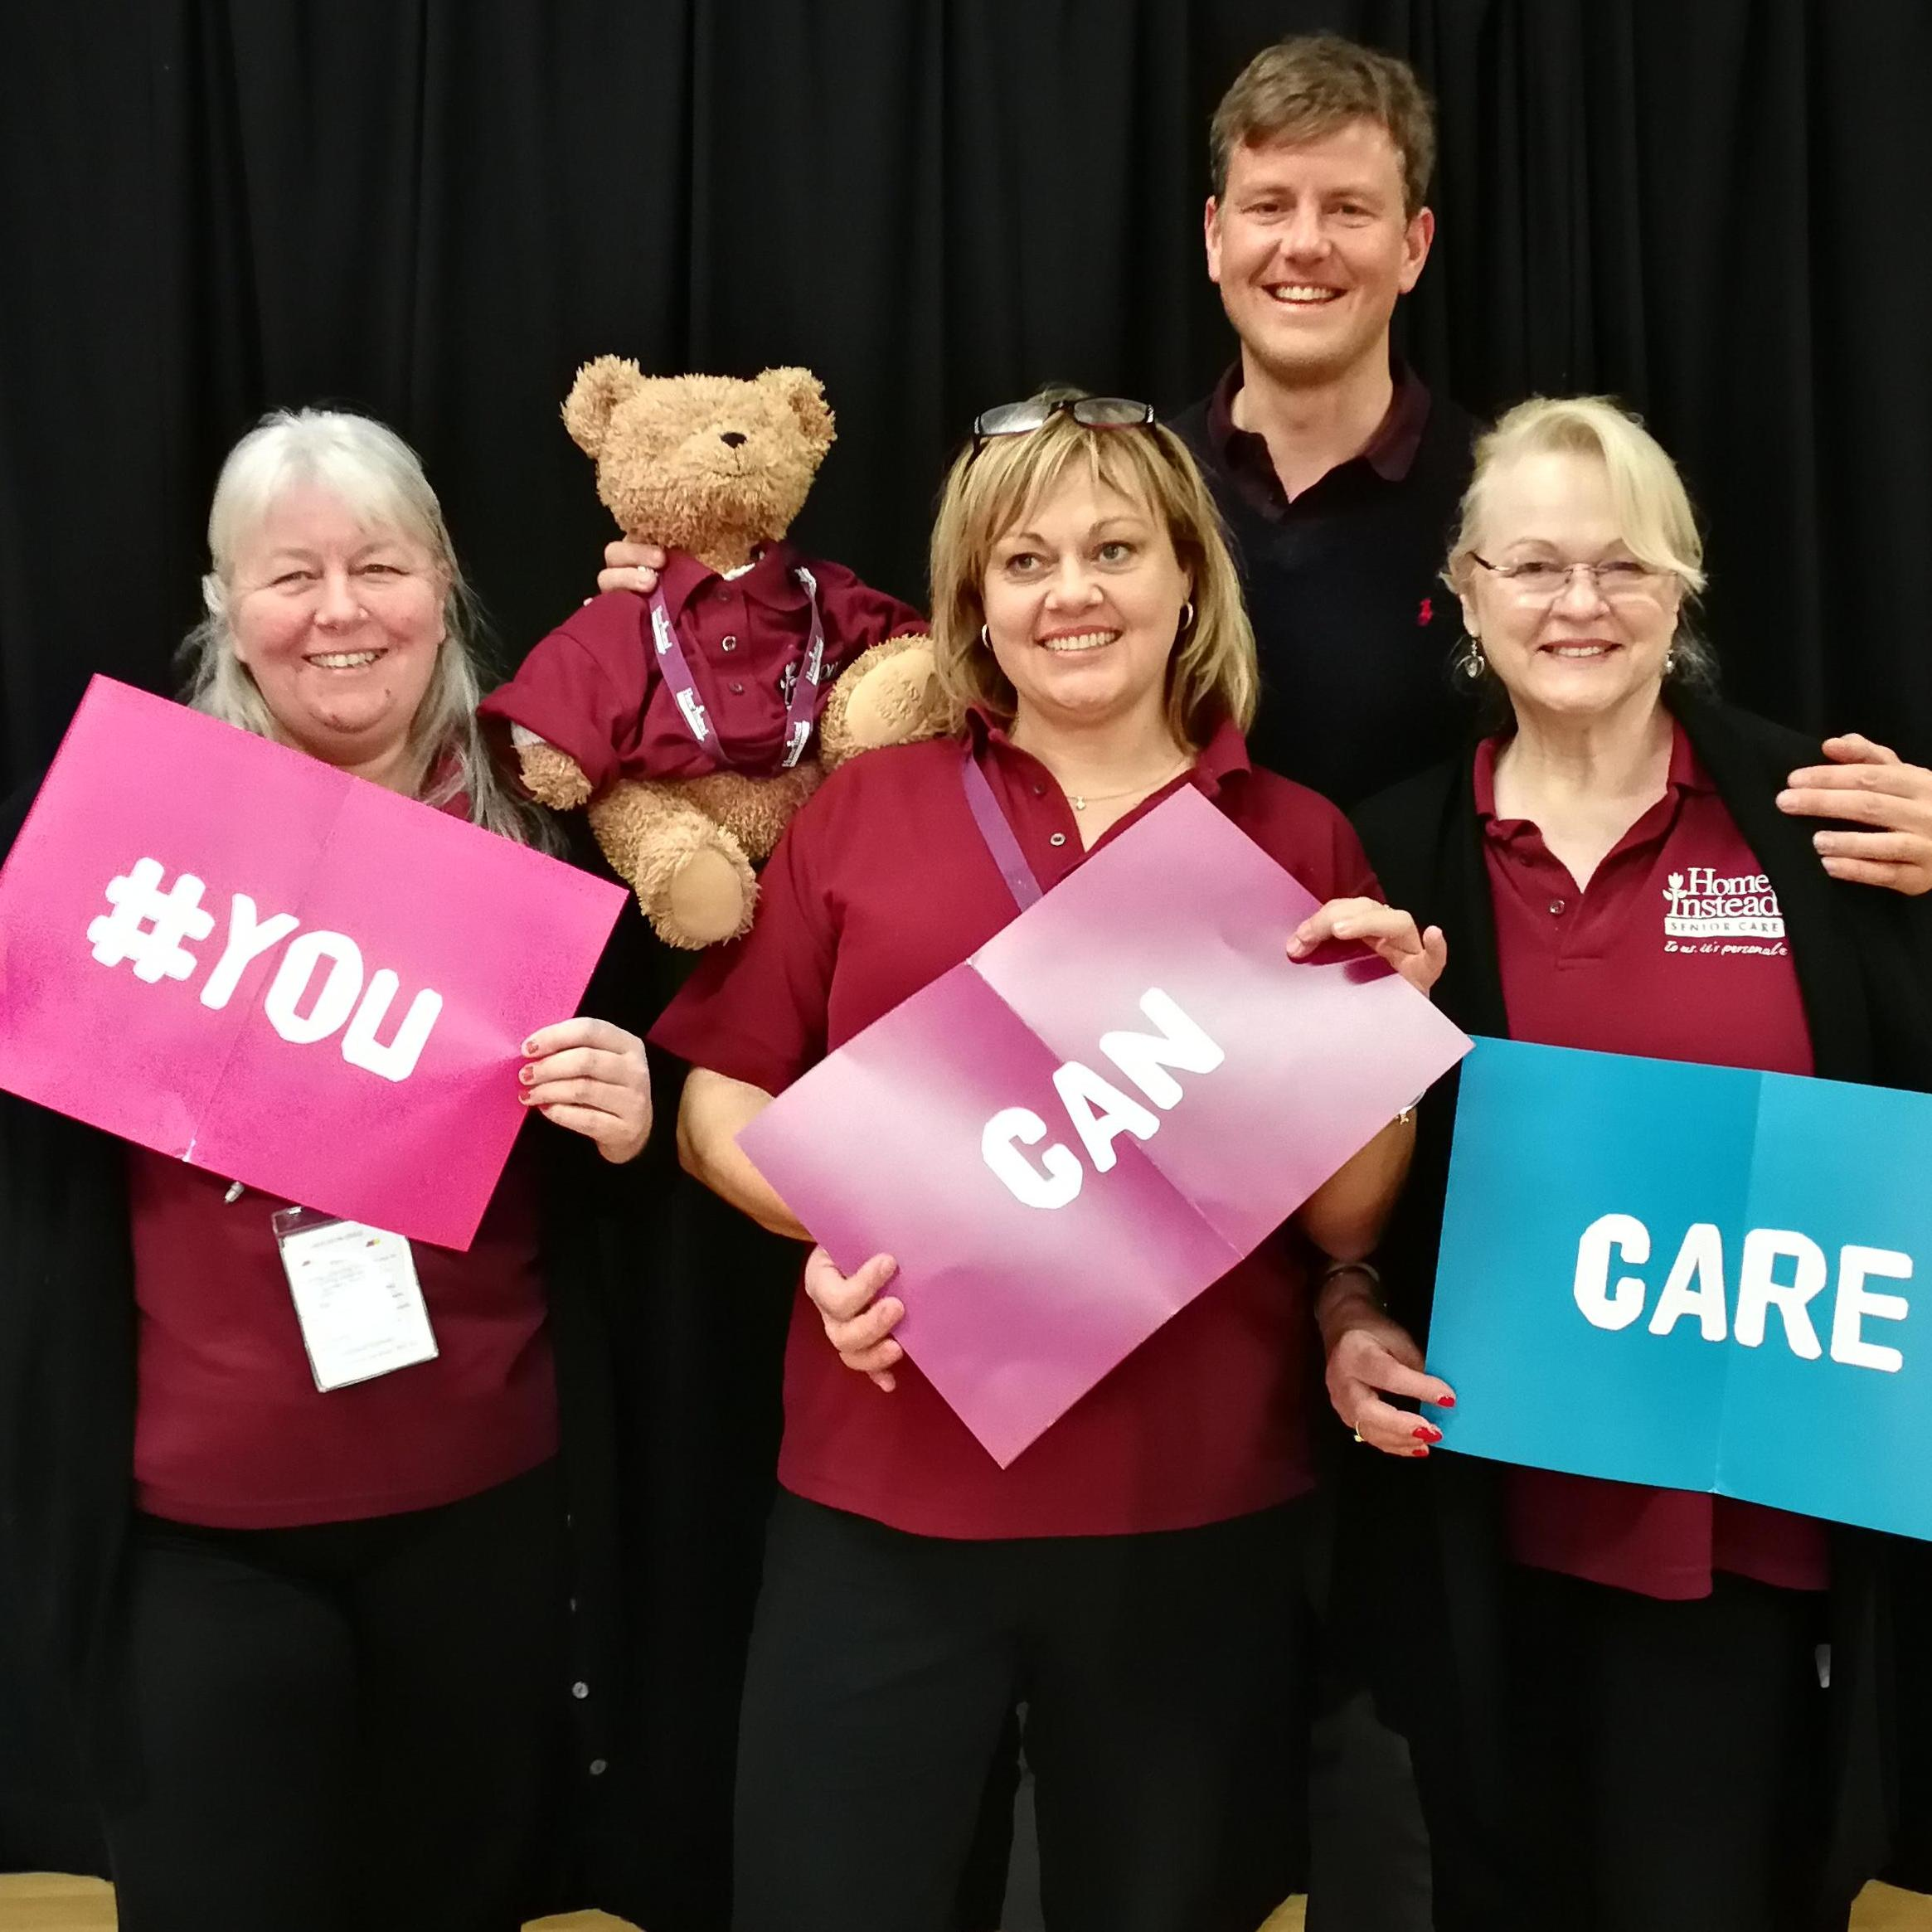 Join our team and discover that #YouCanCare